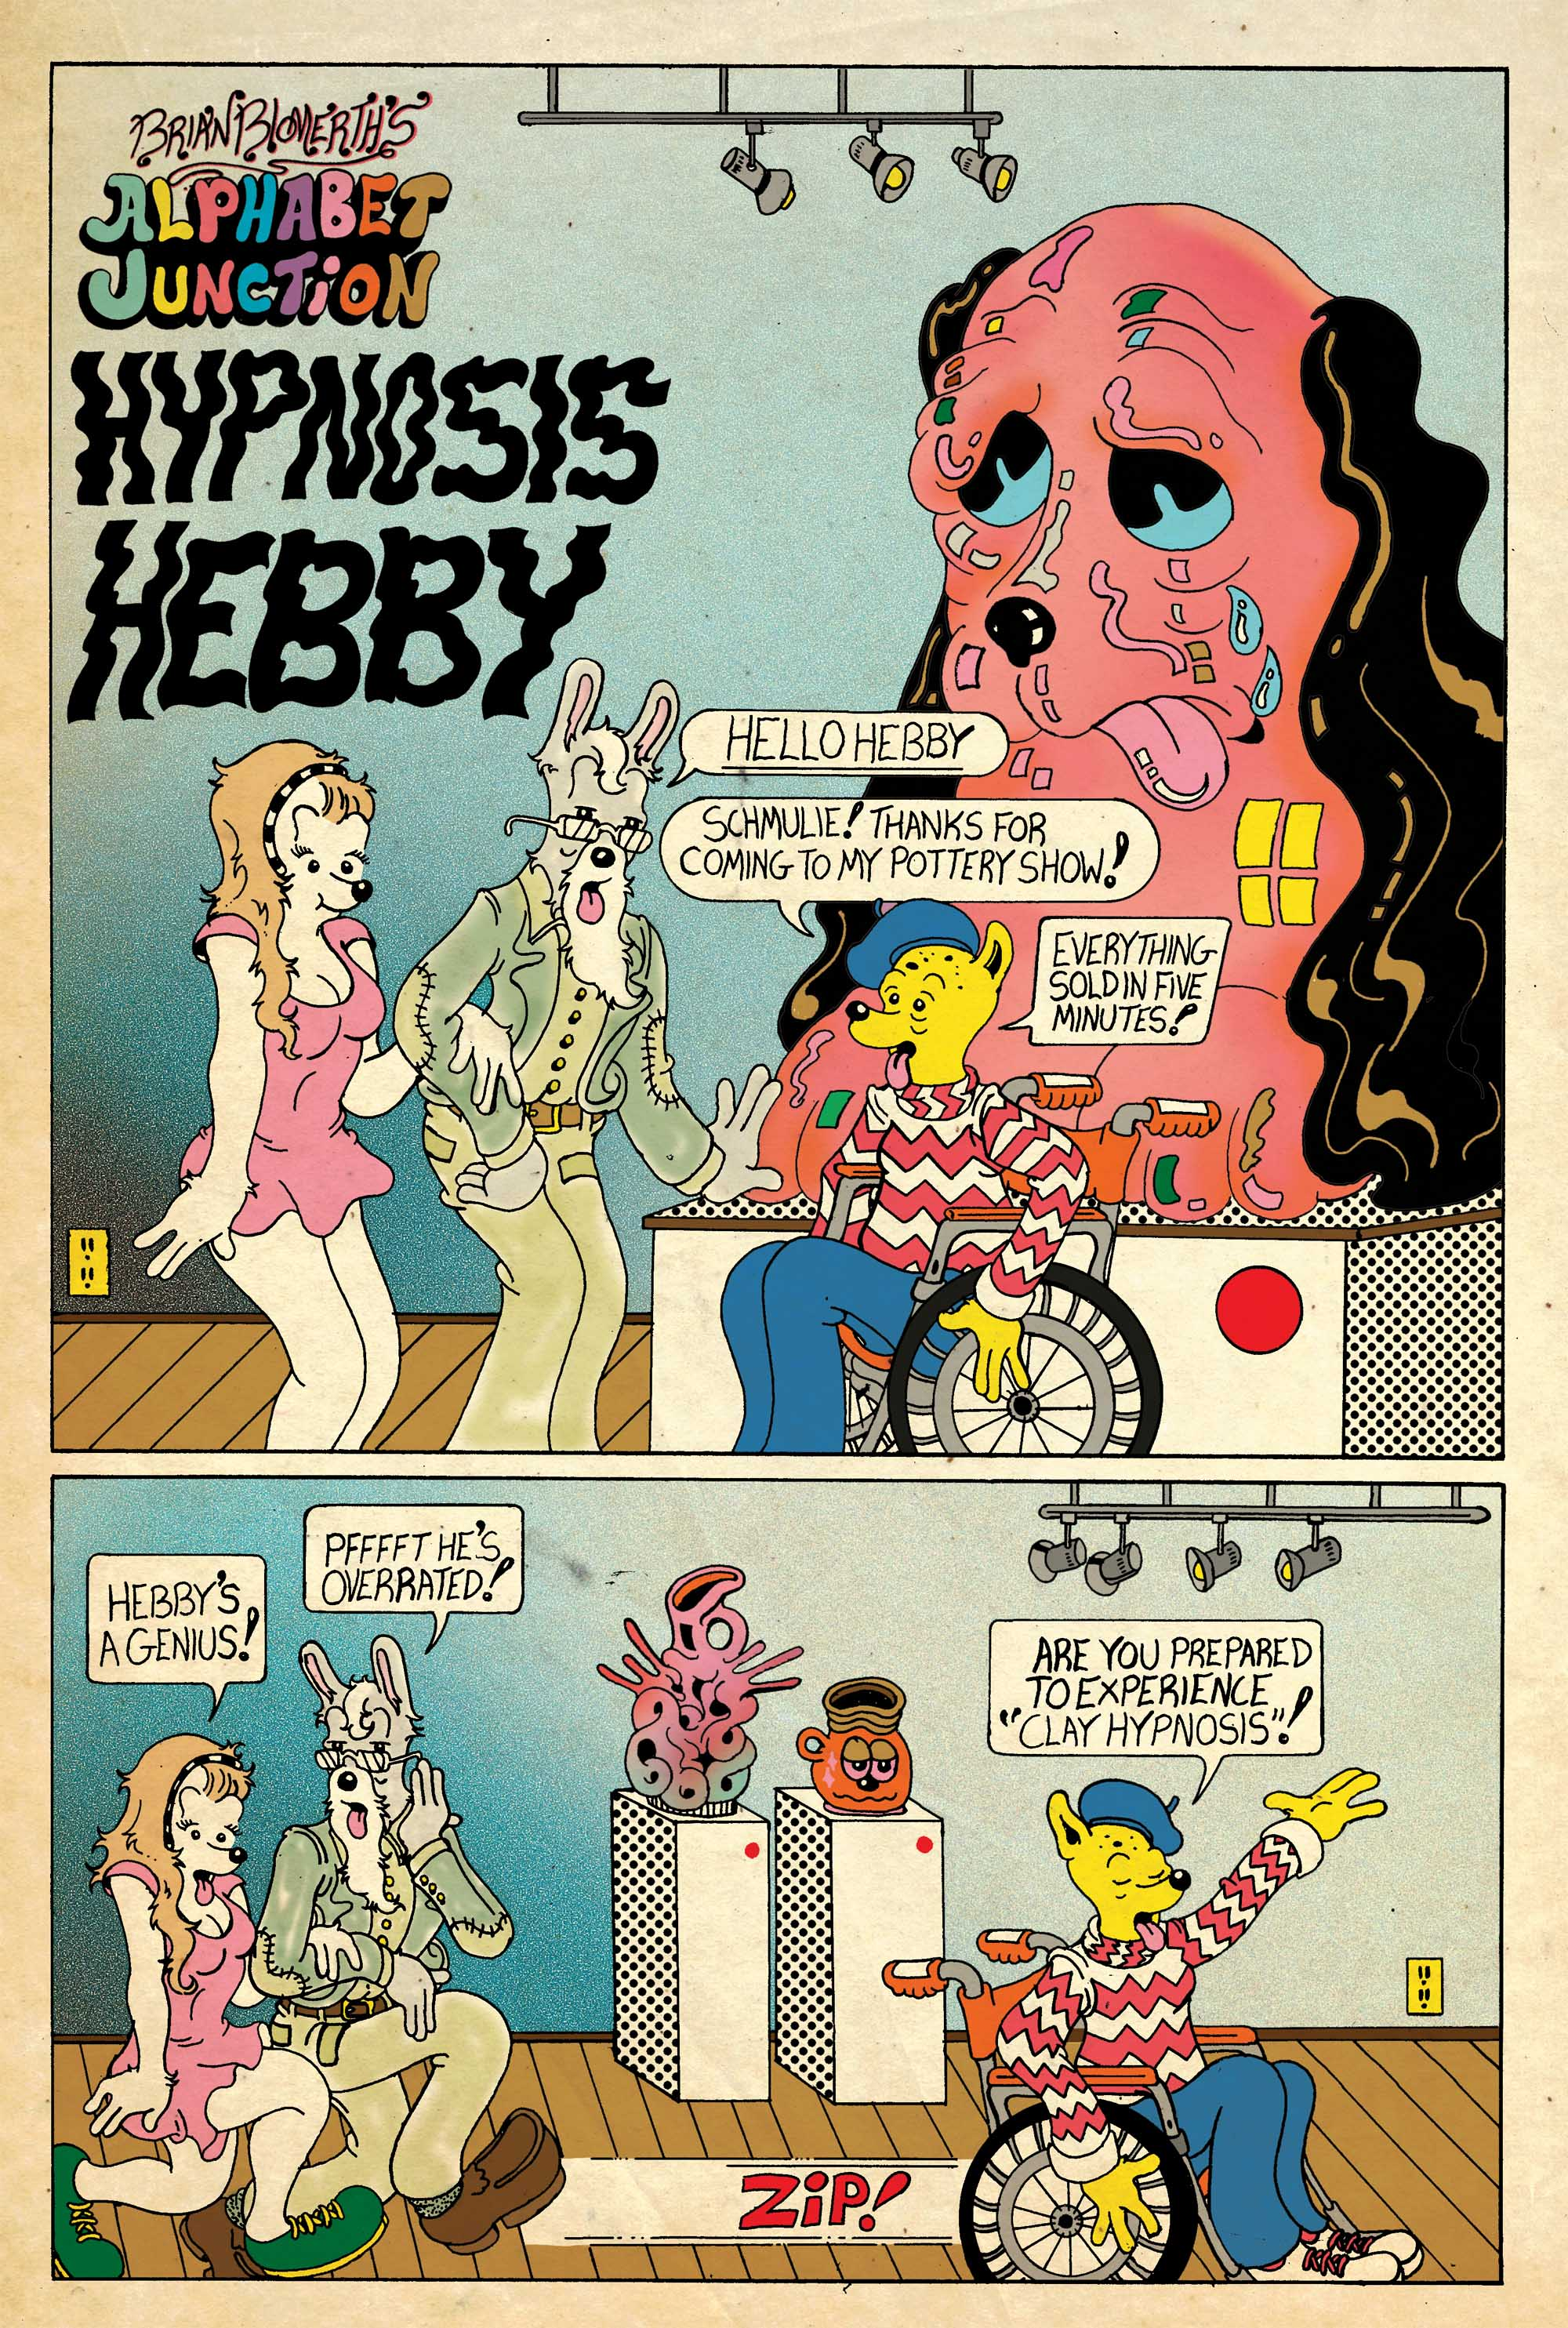 Selling Fine Art Using Hypnosis Today S Comic By Brian